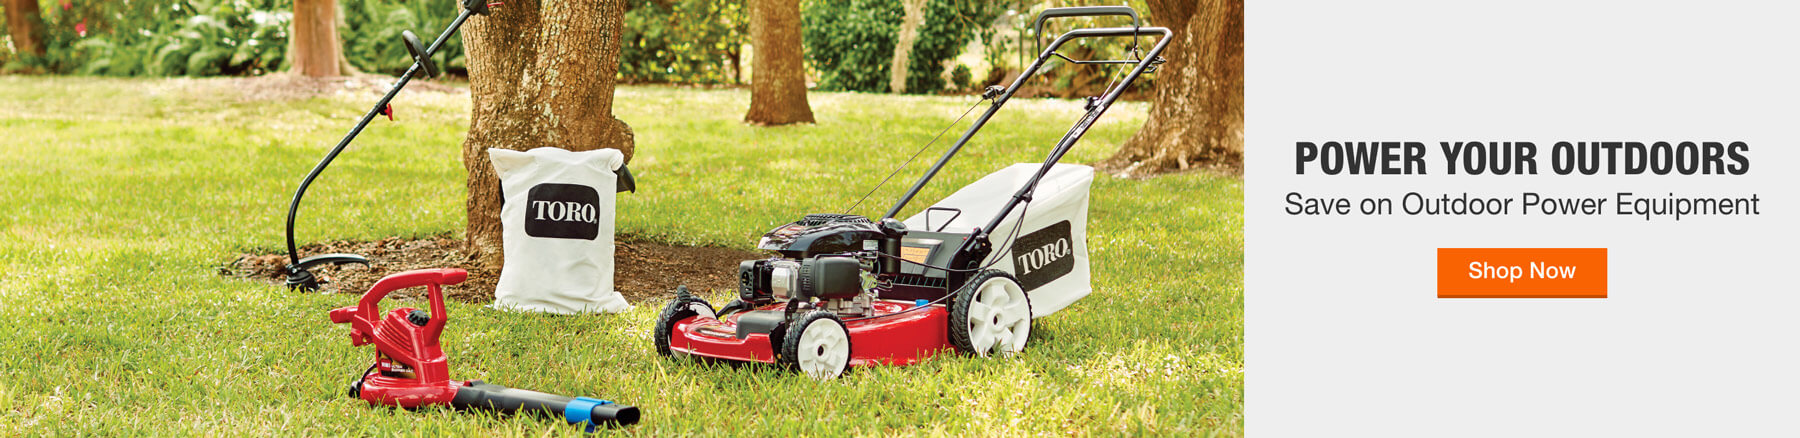 POWER YOUR OUTDOORS Save on Outdoor Power Equipment Shop Now